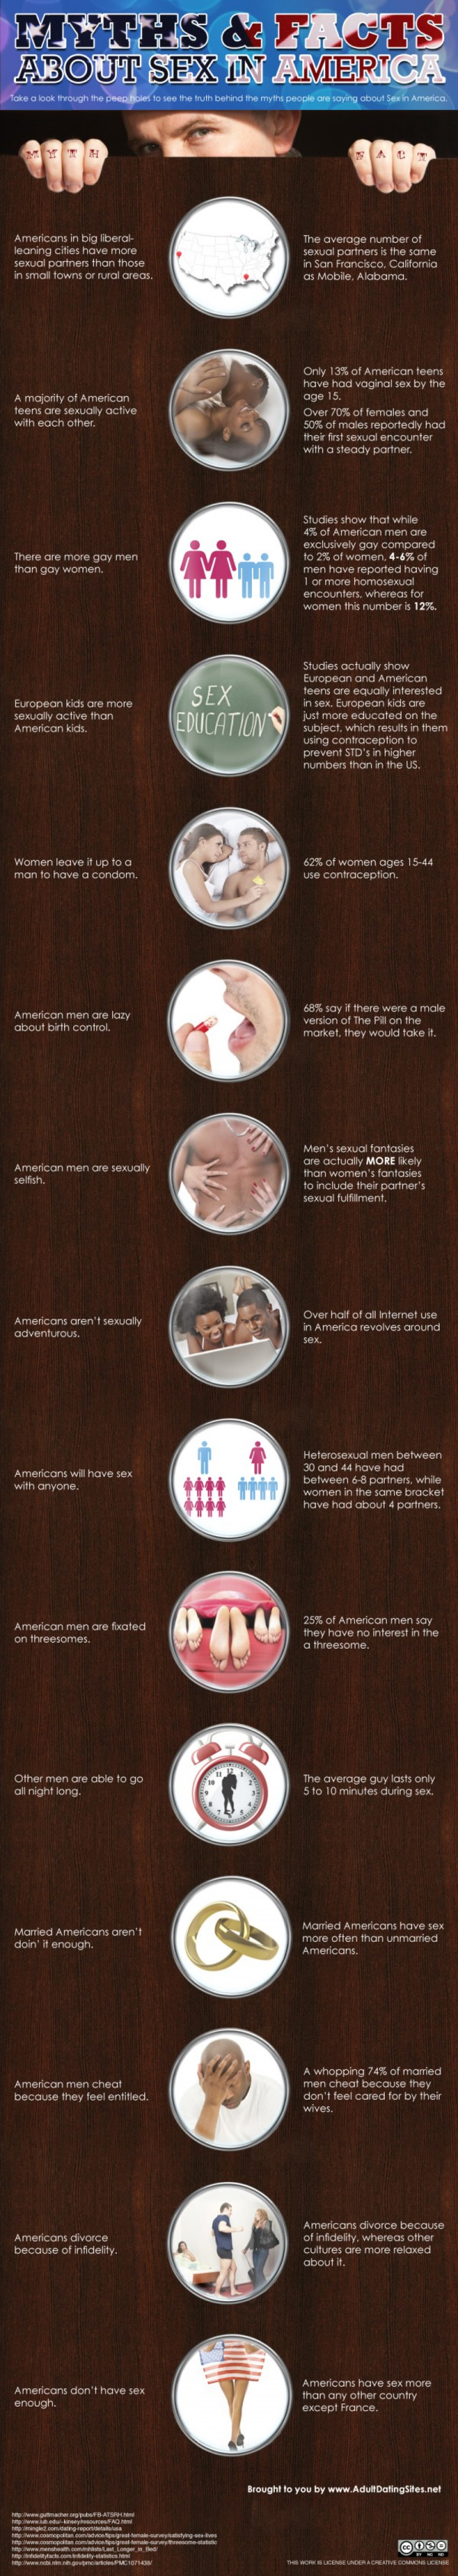 Myths and Facts about Sex in America Infographic